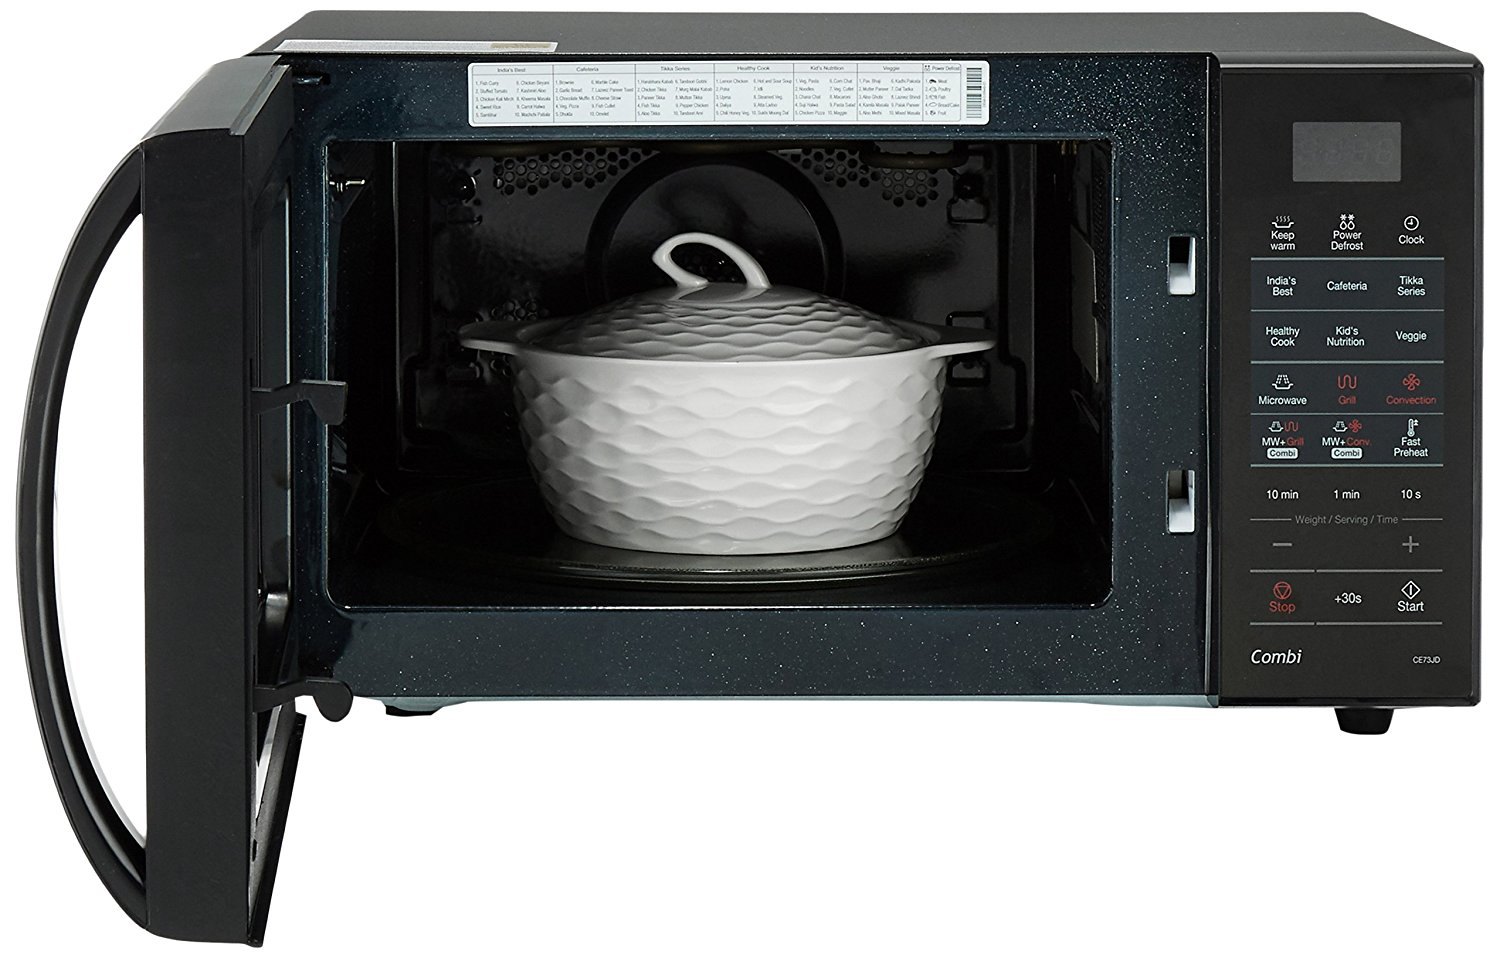 Samsung Black Exterior Microwave Oven